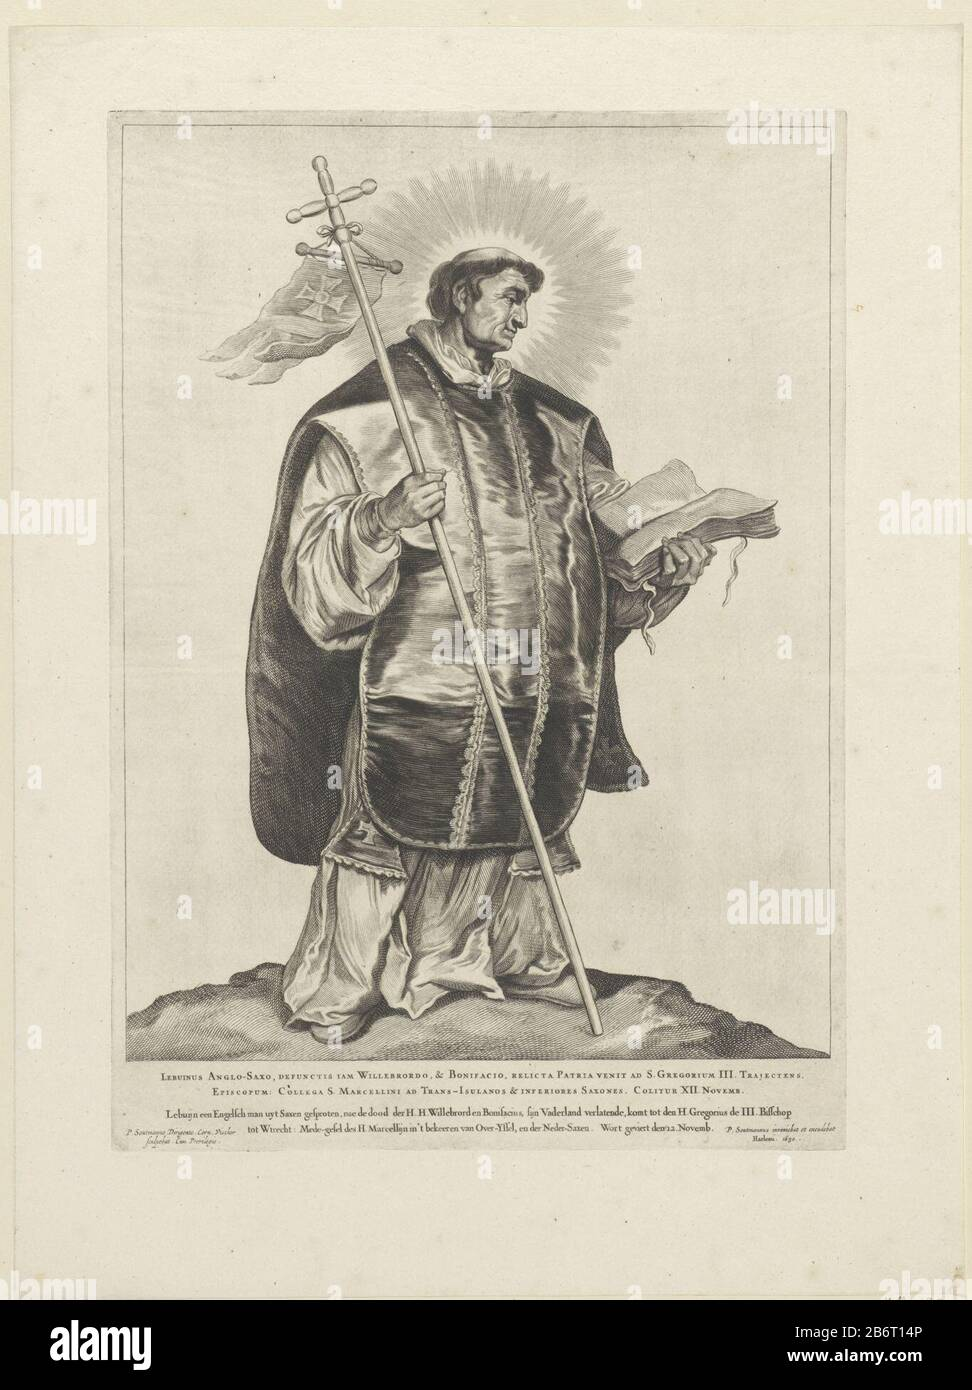 H Lebuinus van Deventer Nederlandse heiligen (serietitel) The sacred Lebuinus depicted as a priest with tunic, chasuble and cross. This print is part of a series of Dutch heiligen. Manufacturer : printmaker Cornelis Visscher (II) (listed building), designed by Pieter Claesz. Soutman (listed building) Publisher: Pieter Claesz. Soutman (listed property) provider of privilege unknown (listed property) Place manufacture: Haarlem Dating: 1650 Physical features: car material: paper Technique: engra (printing process) Dimensions: plate edge: H 441 mm × W 314 mmToelichtingDeze picture is part of the s Stock Photo